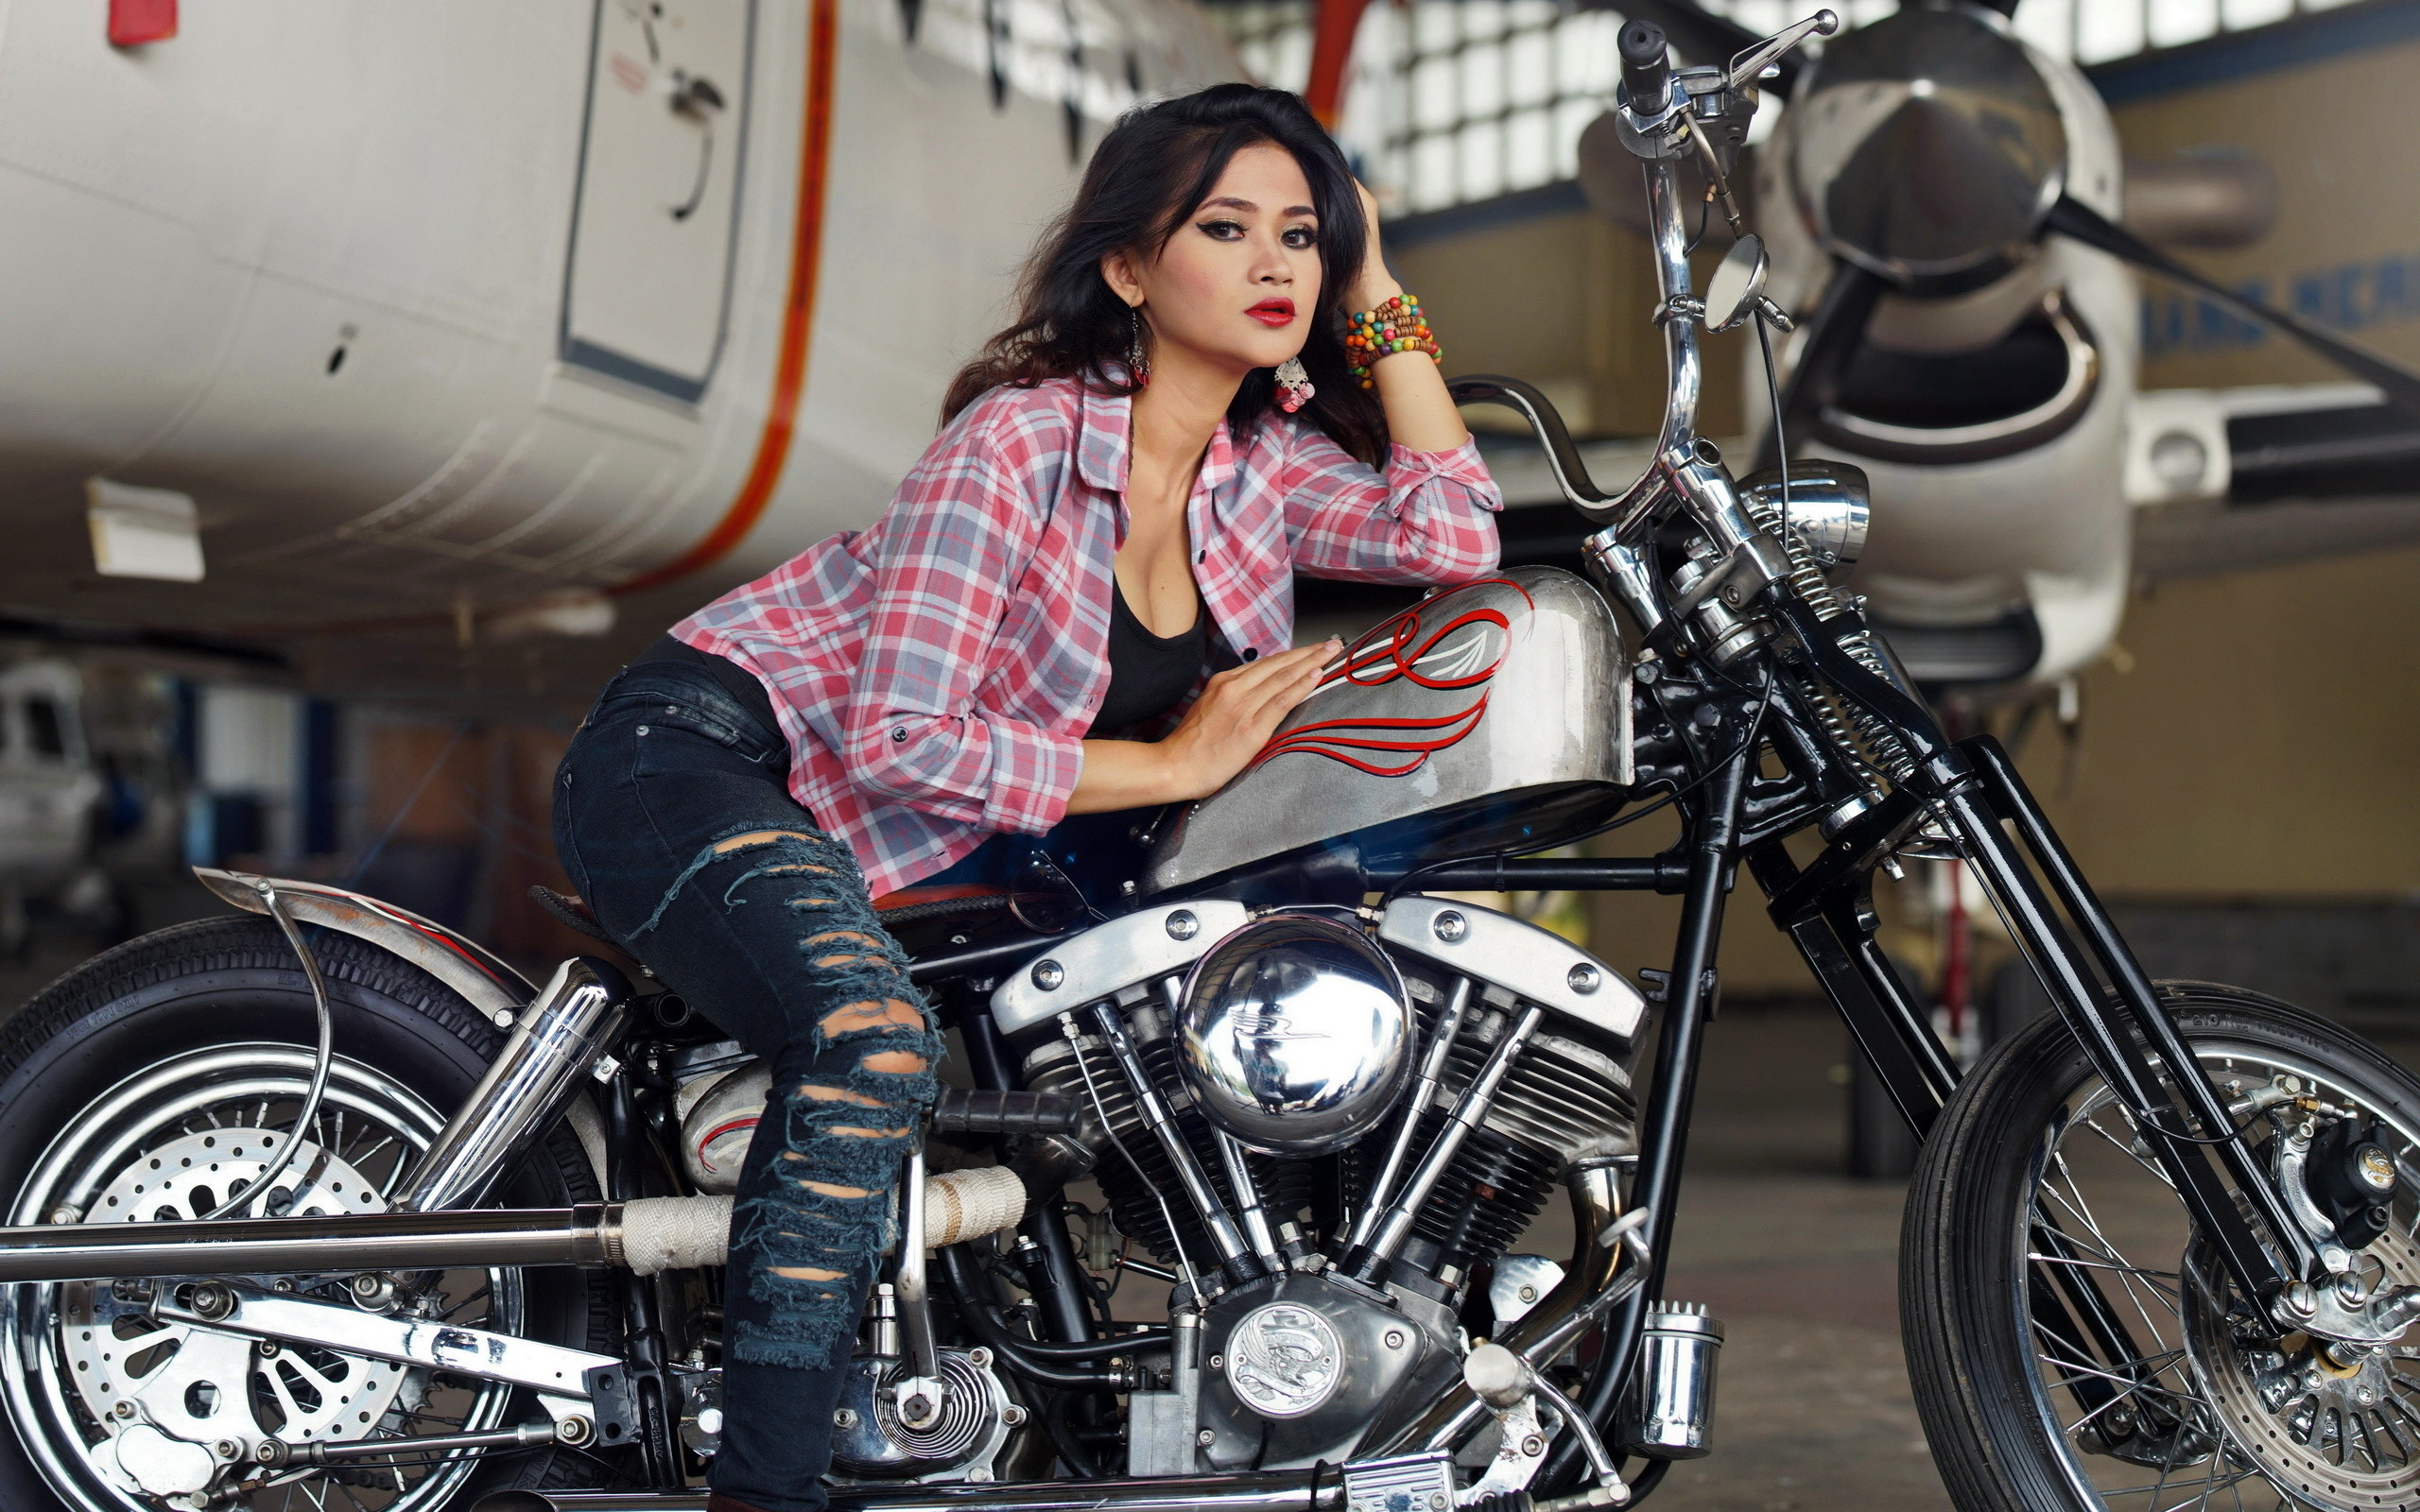 Chopper girls motorcycle wallpaper 73 images - Pictures of chicks on bikes ...